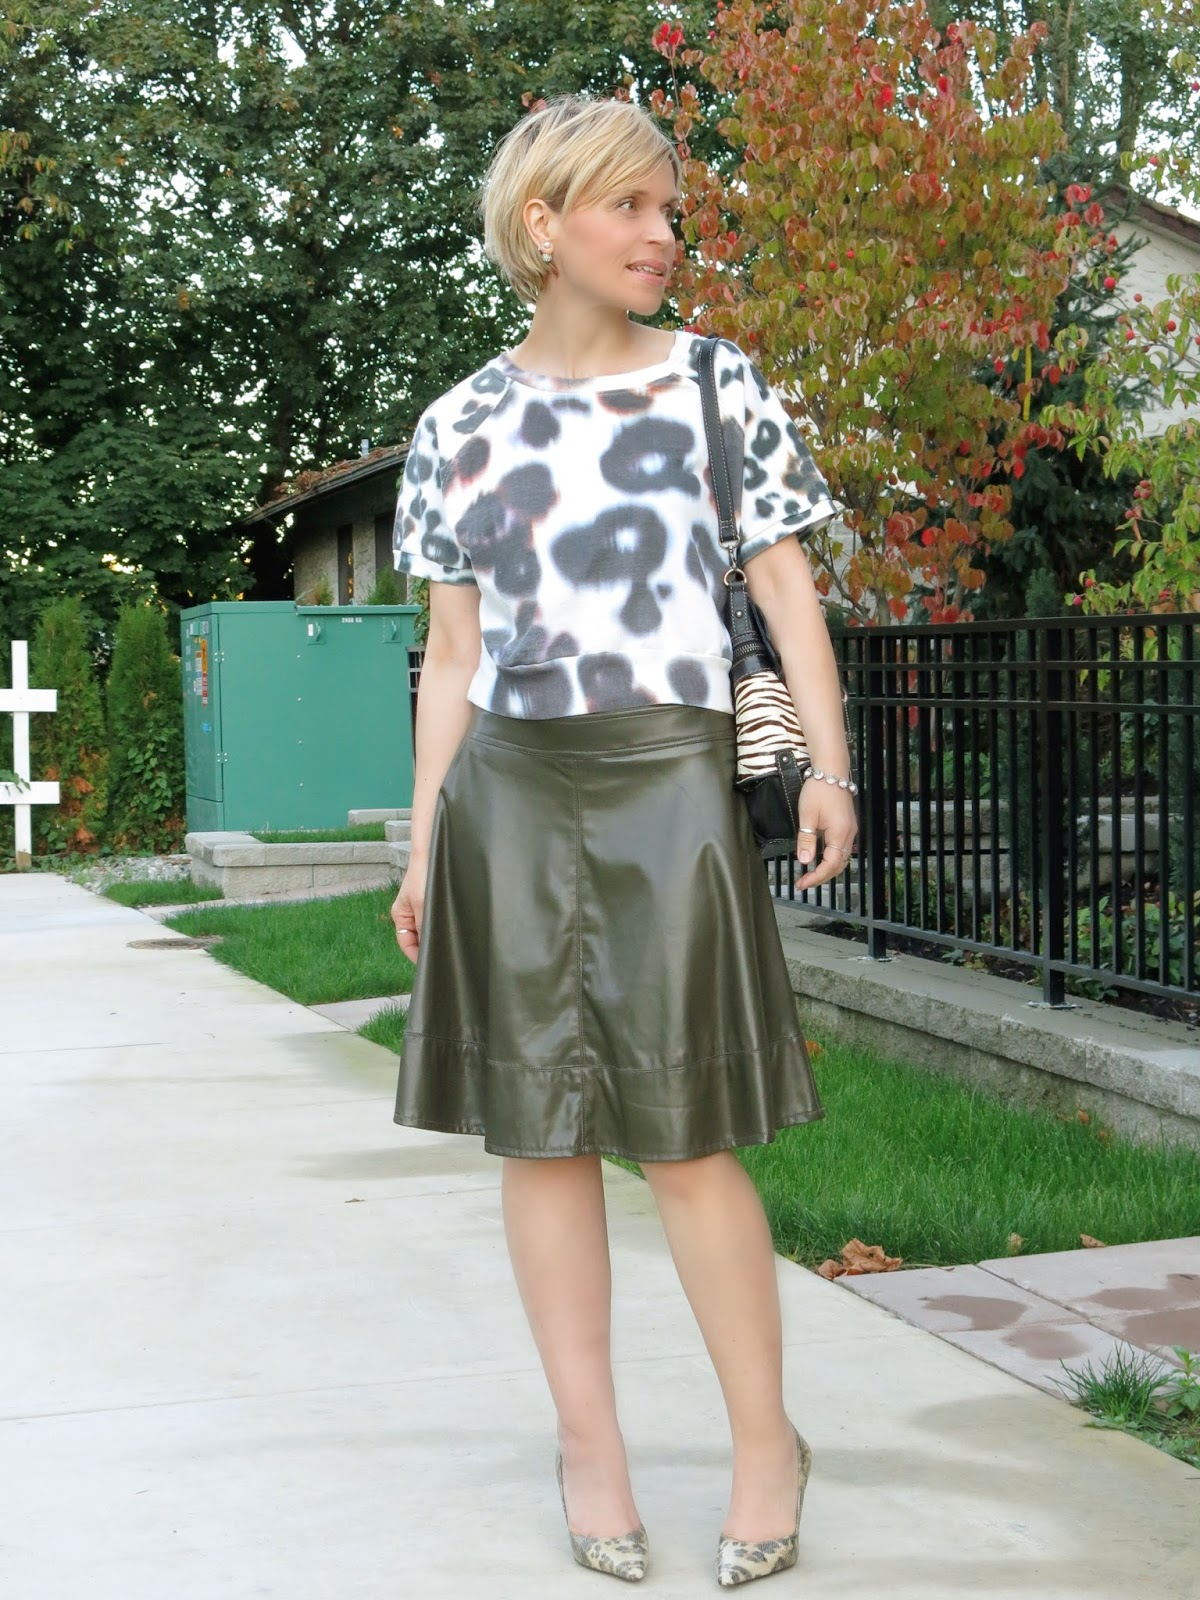 styling a cropped patterned sweatshirt with a pleather skater skirt and animal-print pumps